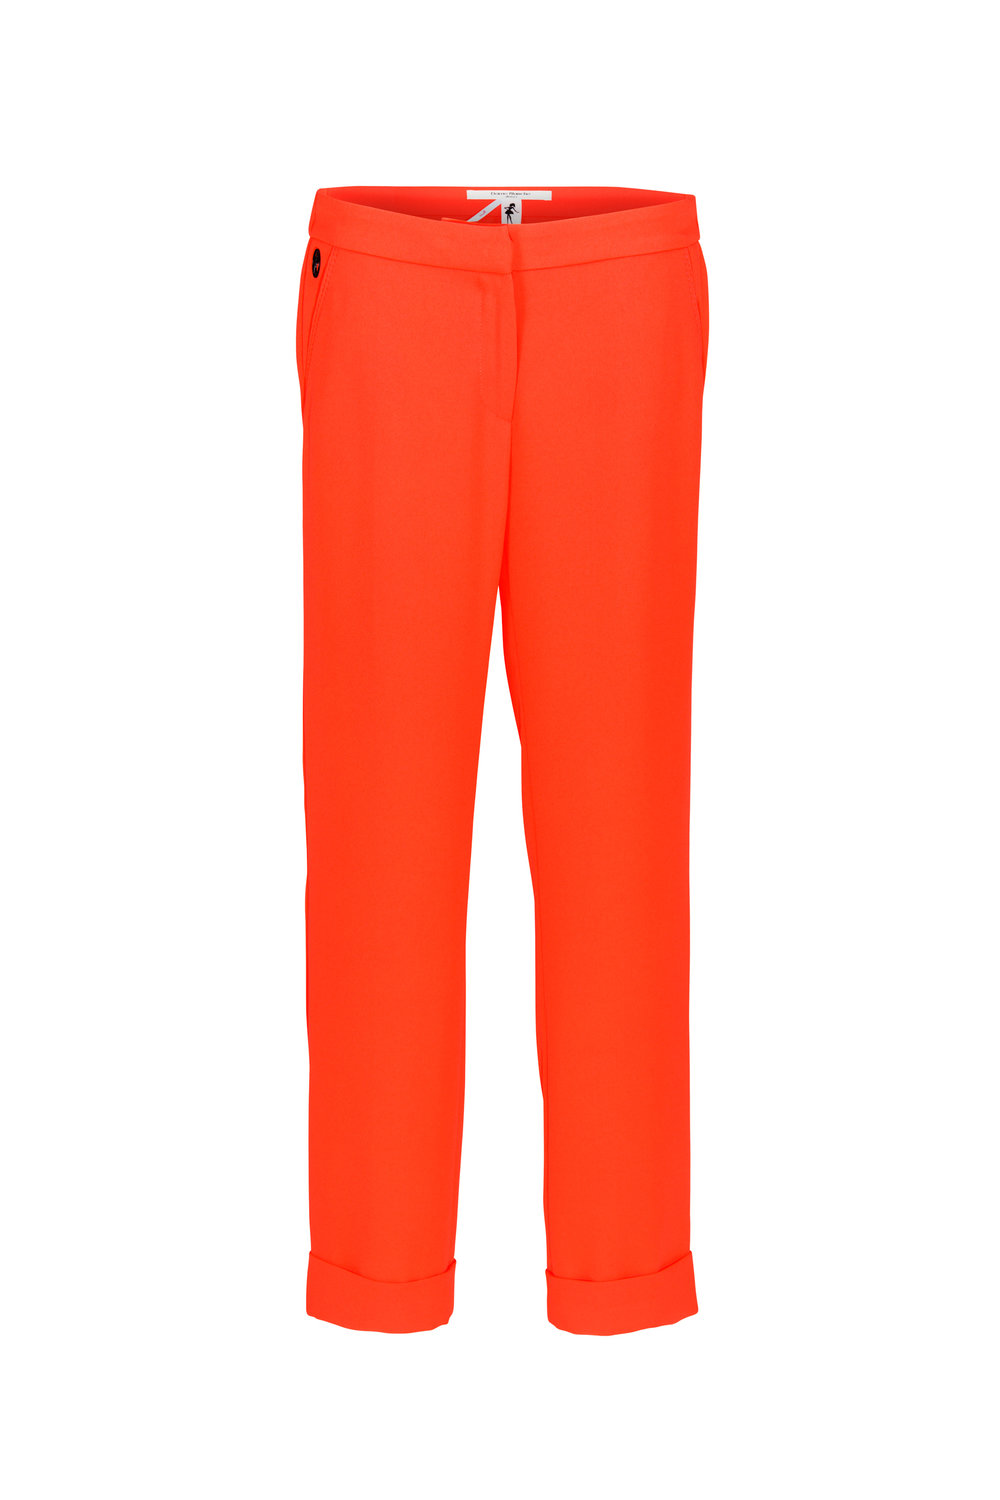 Thérèse 1 Orange (€169,95)